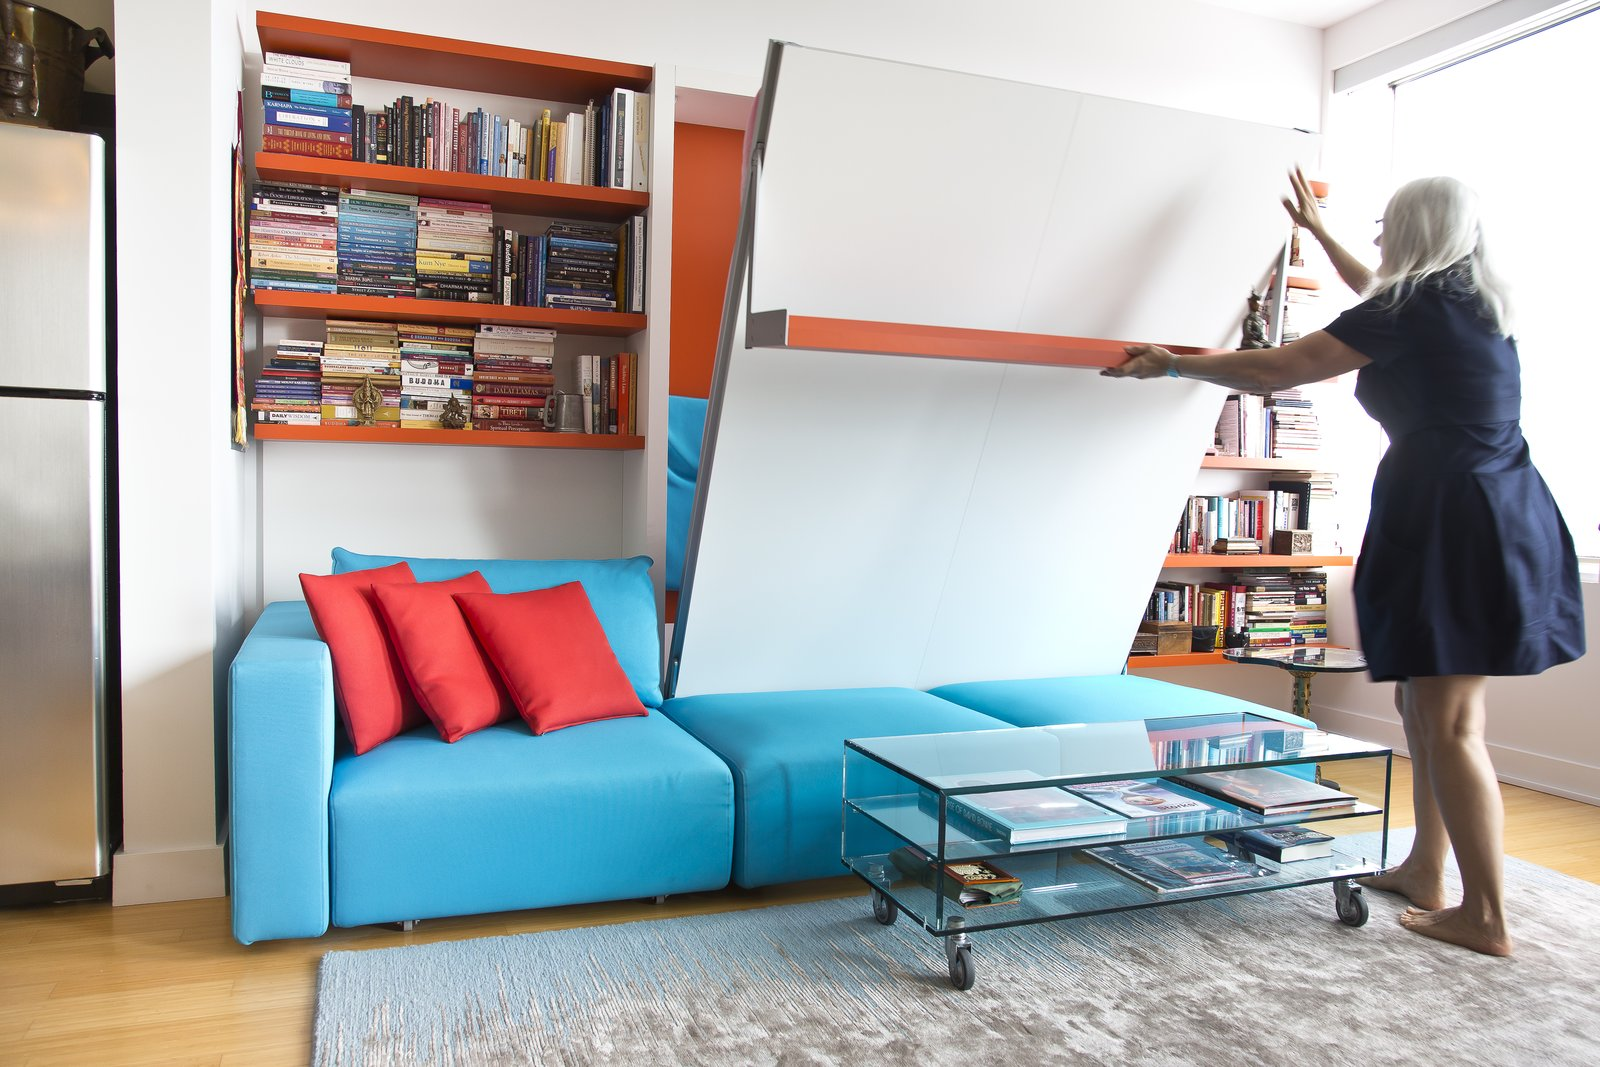 Annette demonstrates the ease of lowering the Swing, a queen-size wall bed with nine-foot sofa and sliding chaise. Here, it integrates with a shelving system, which continues the apartment's quirky motif of orange and blue. Two Film Industry Veterans Flip the Script With a Suburb-to-City Move - Photo 4 of 6